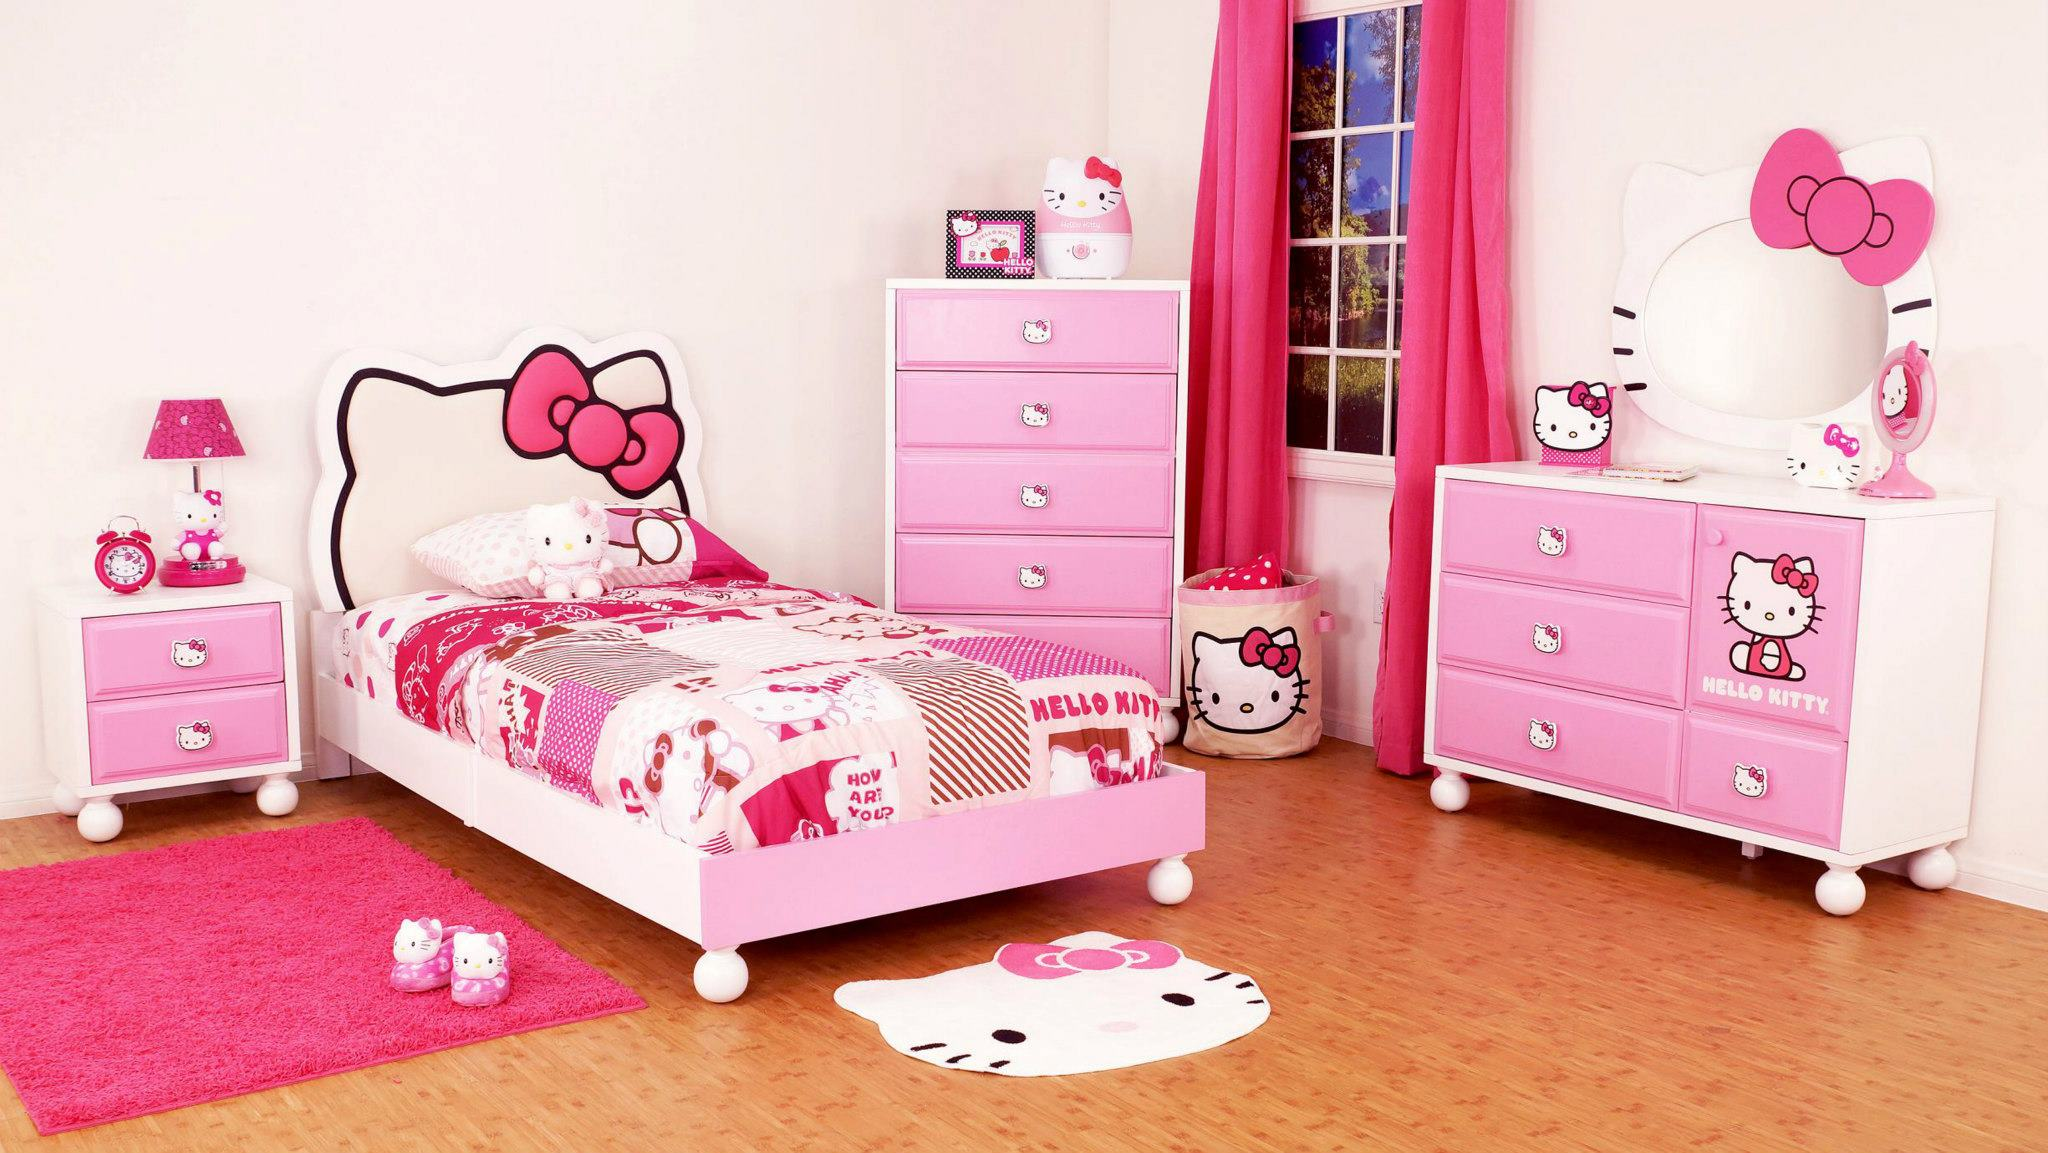 View in gallery hello kitty theme kids bedroom interior design